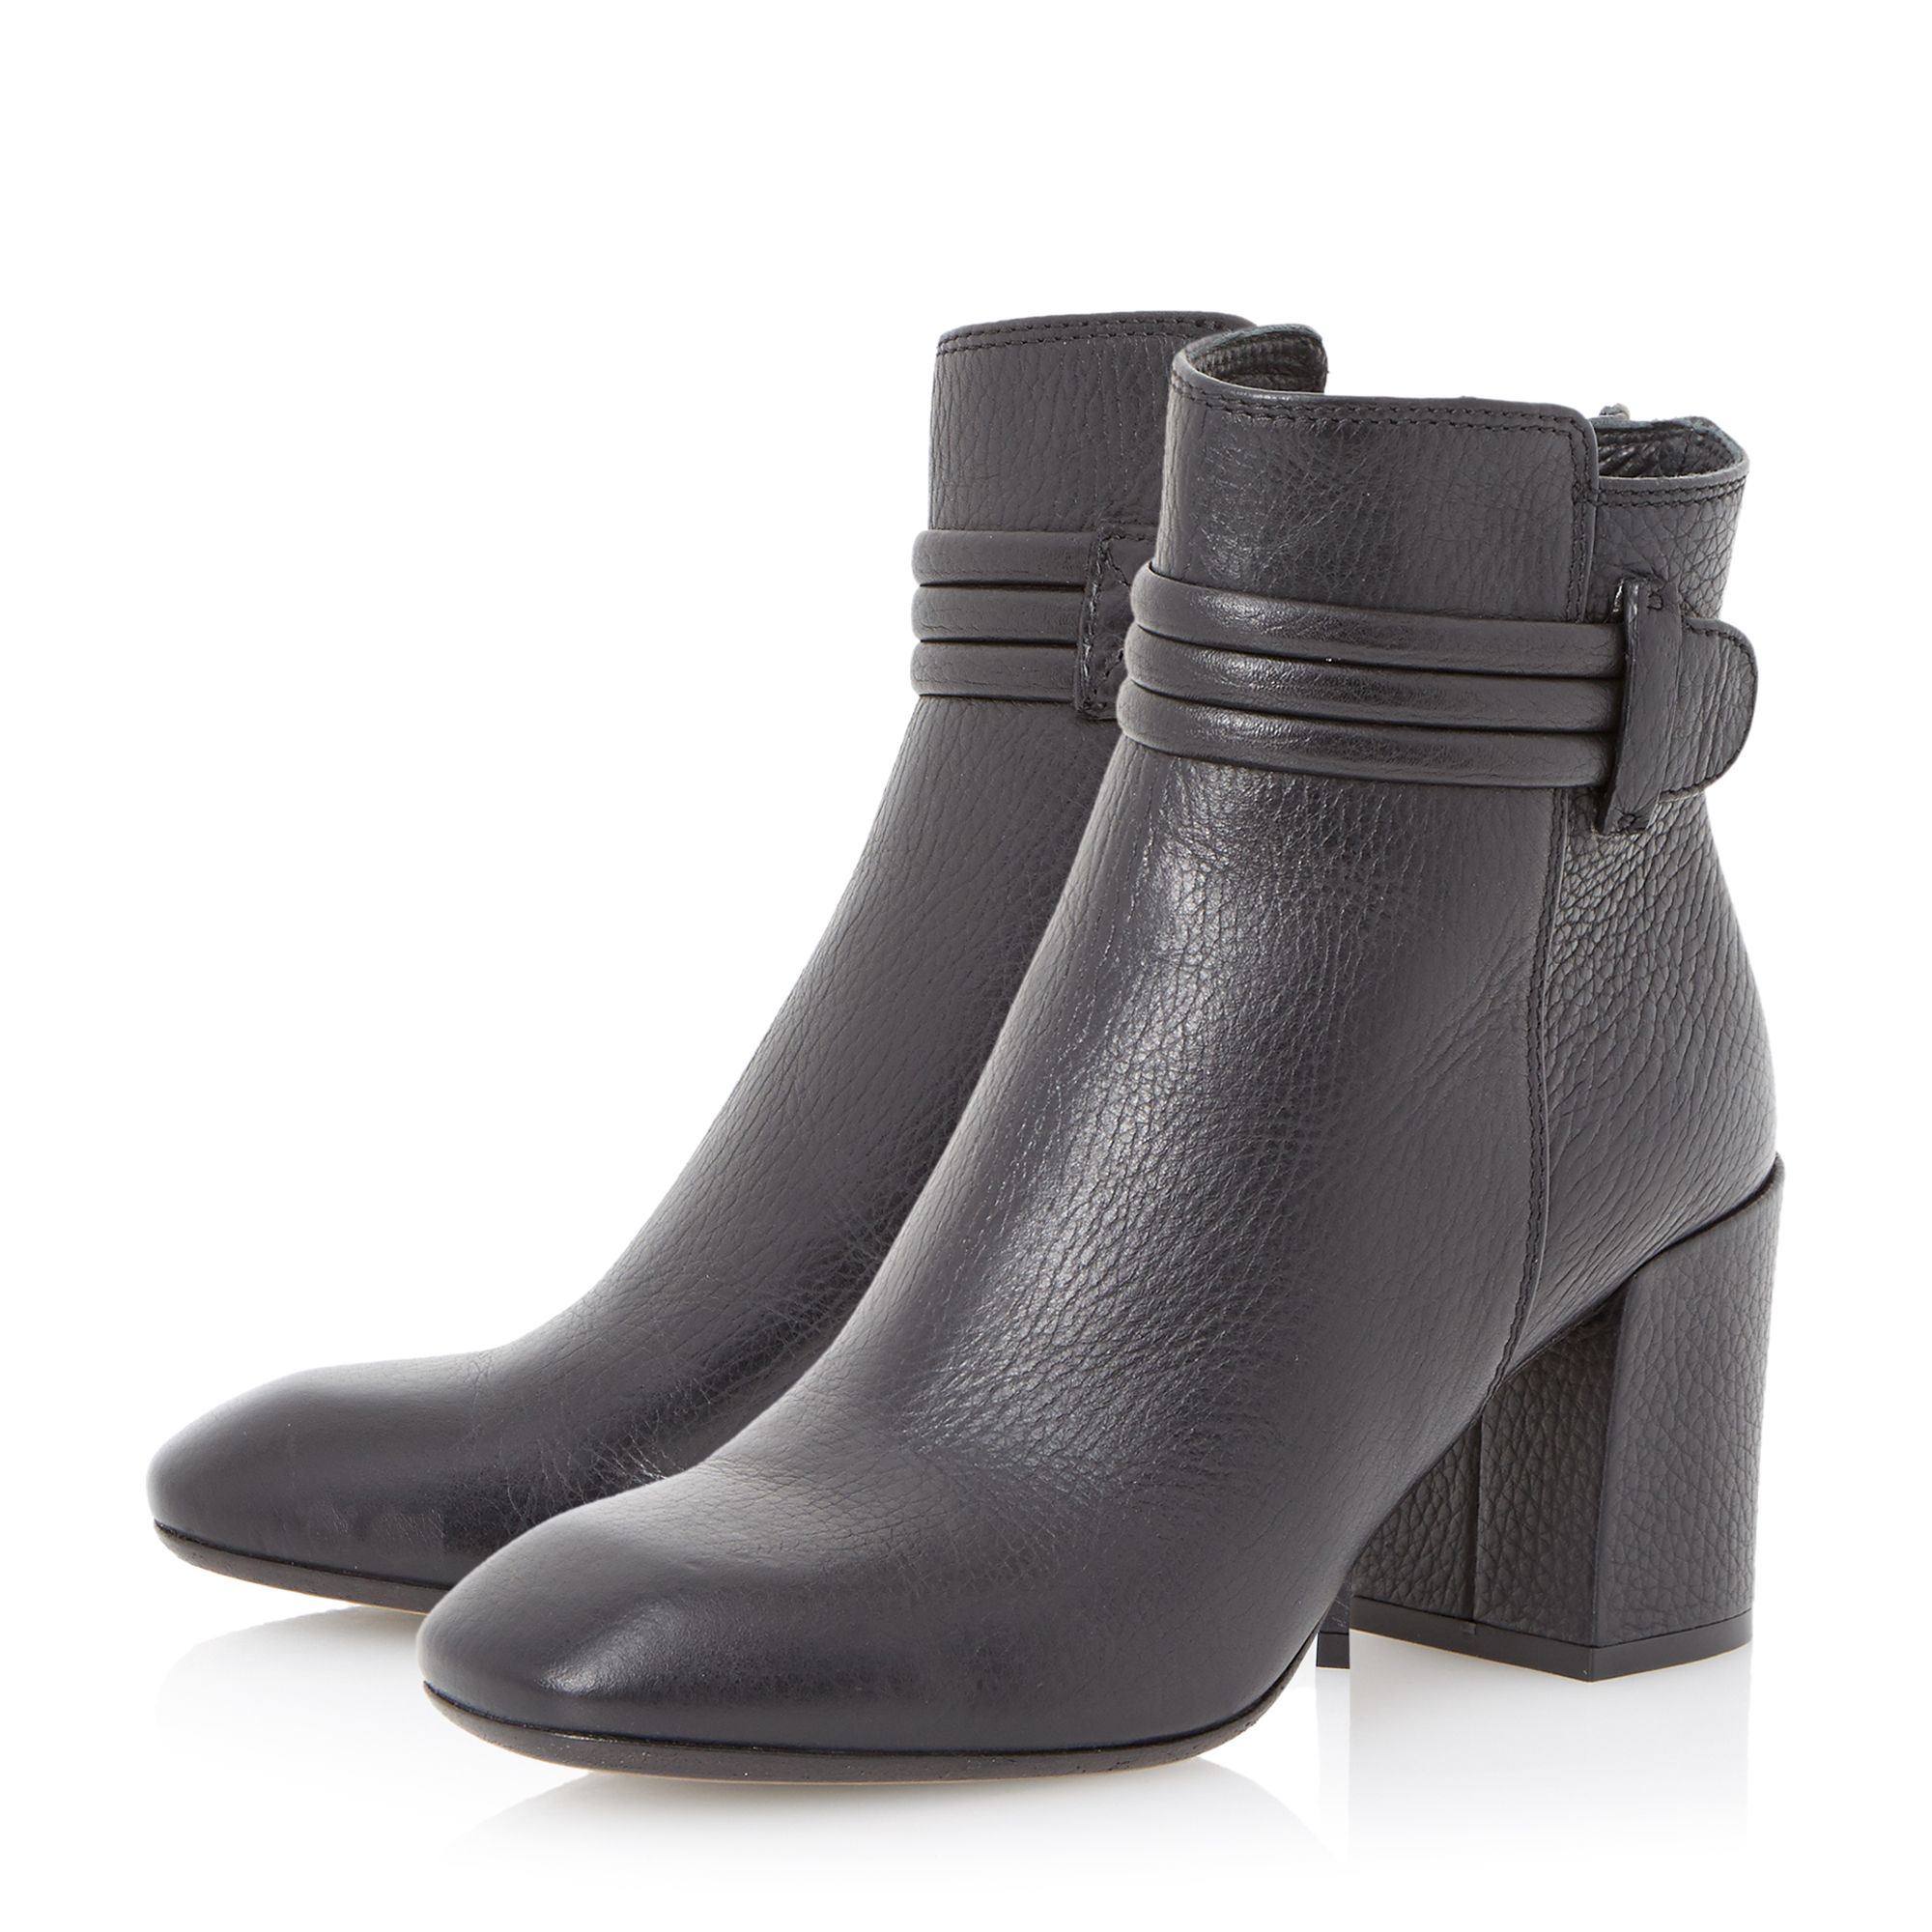 dune black olena square toe leather ankle boot in black lyst